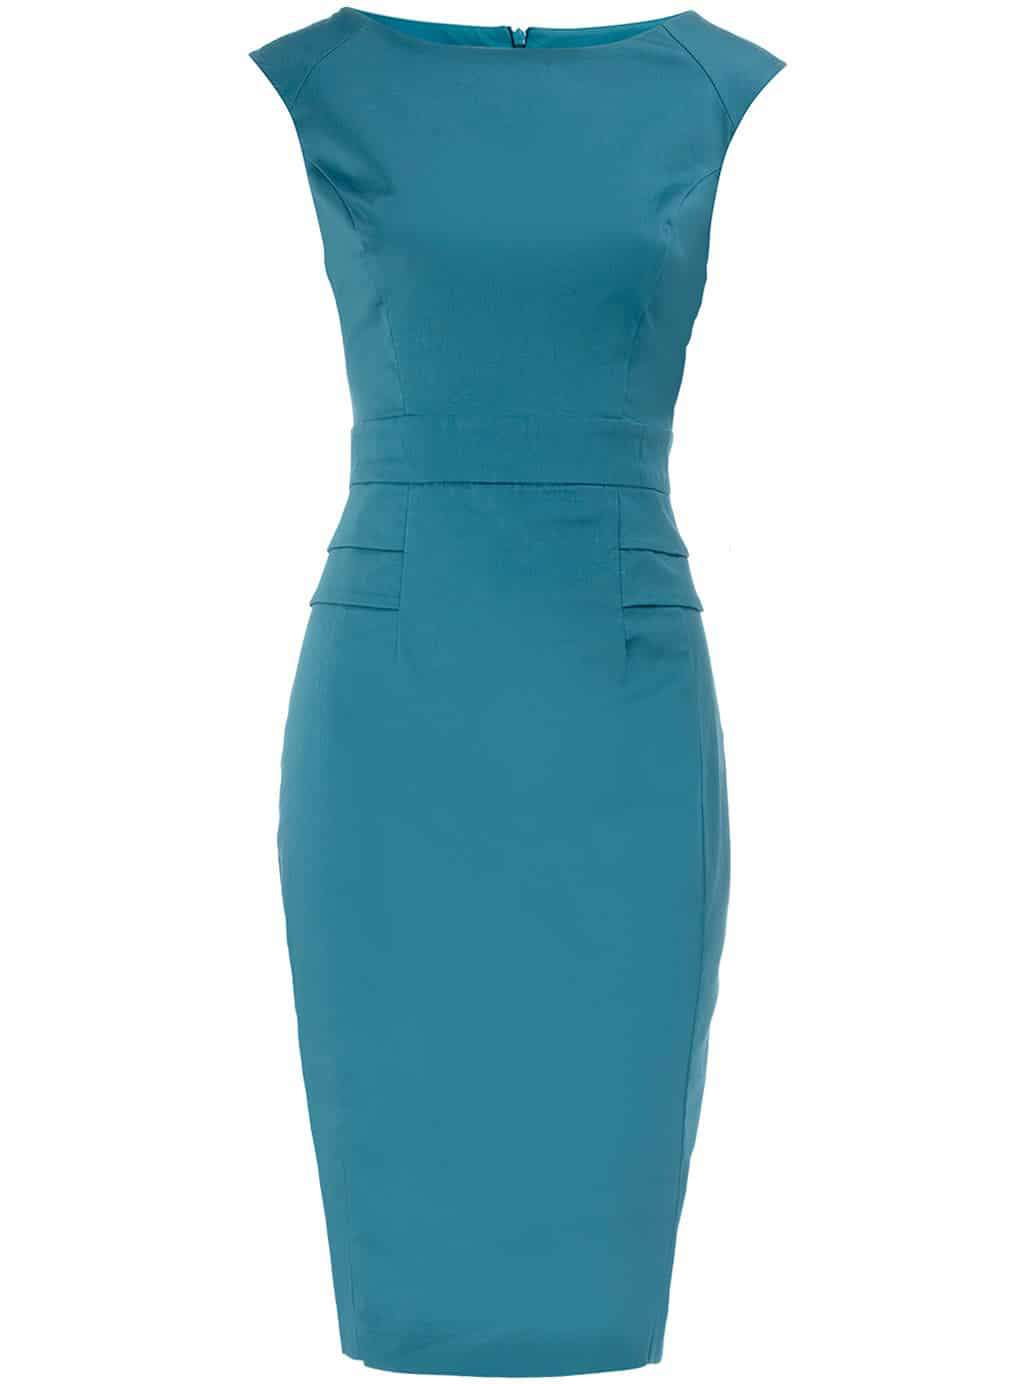 Dorothy Perkins Aqua Peplum Dress